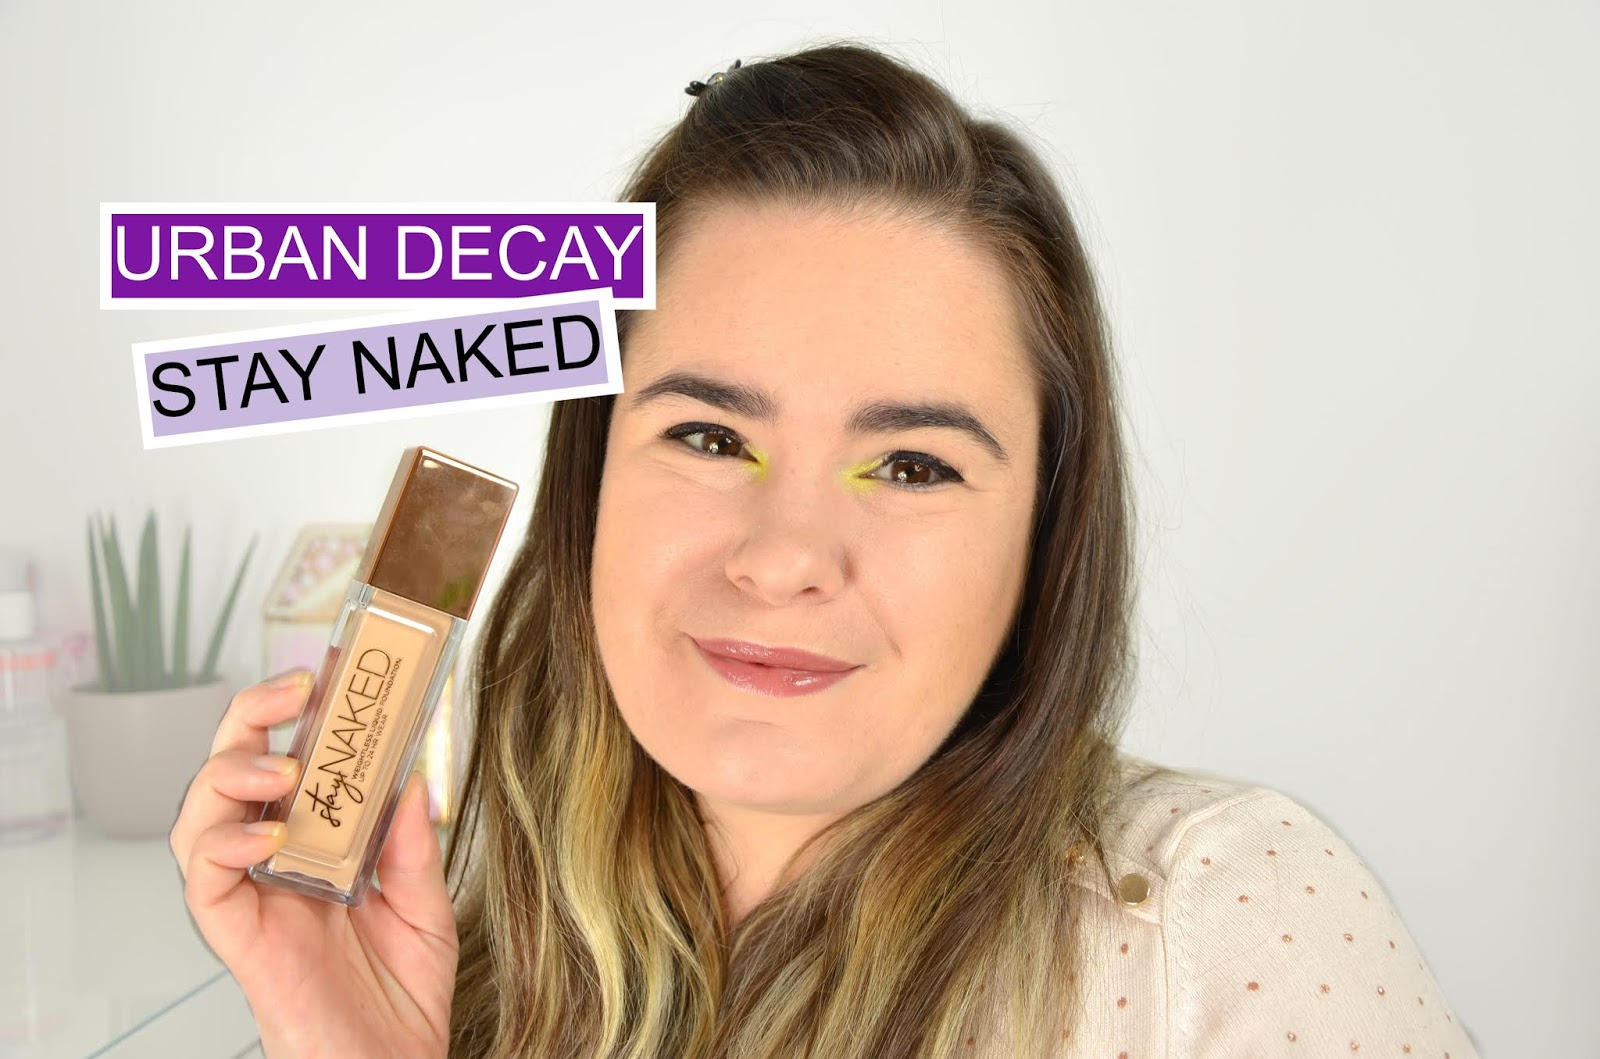 crash test fond de teint urban decay stay naked nouveauté maquillage 2019